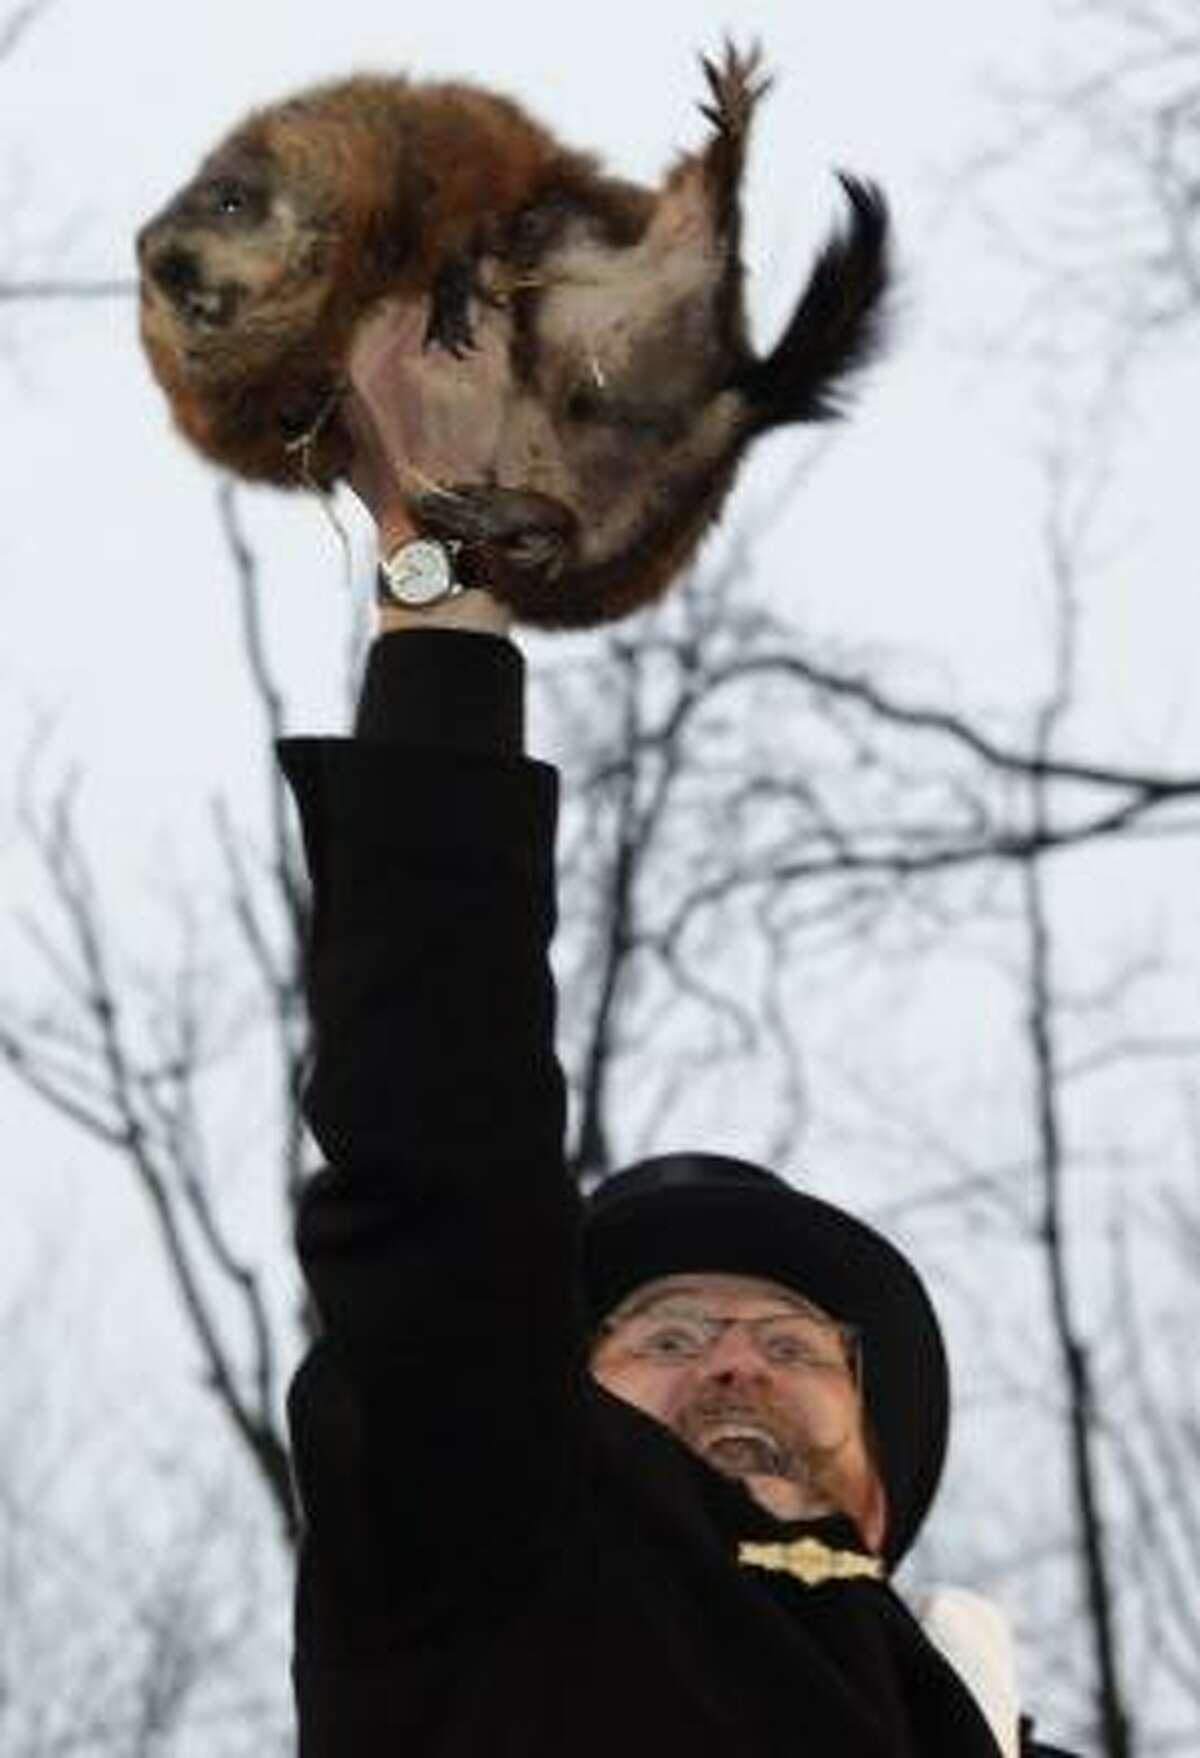 Ben Hughes, handler of weather-predicting groundhog Punxsutawney Phil, holds Phil in the air after removing him from his stump at Gobbler's Knob on Monday in Punxsutawney, Pa.